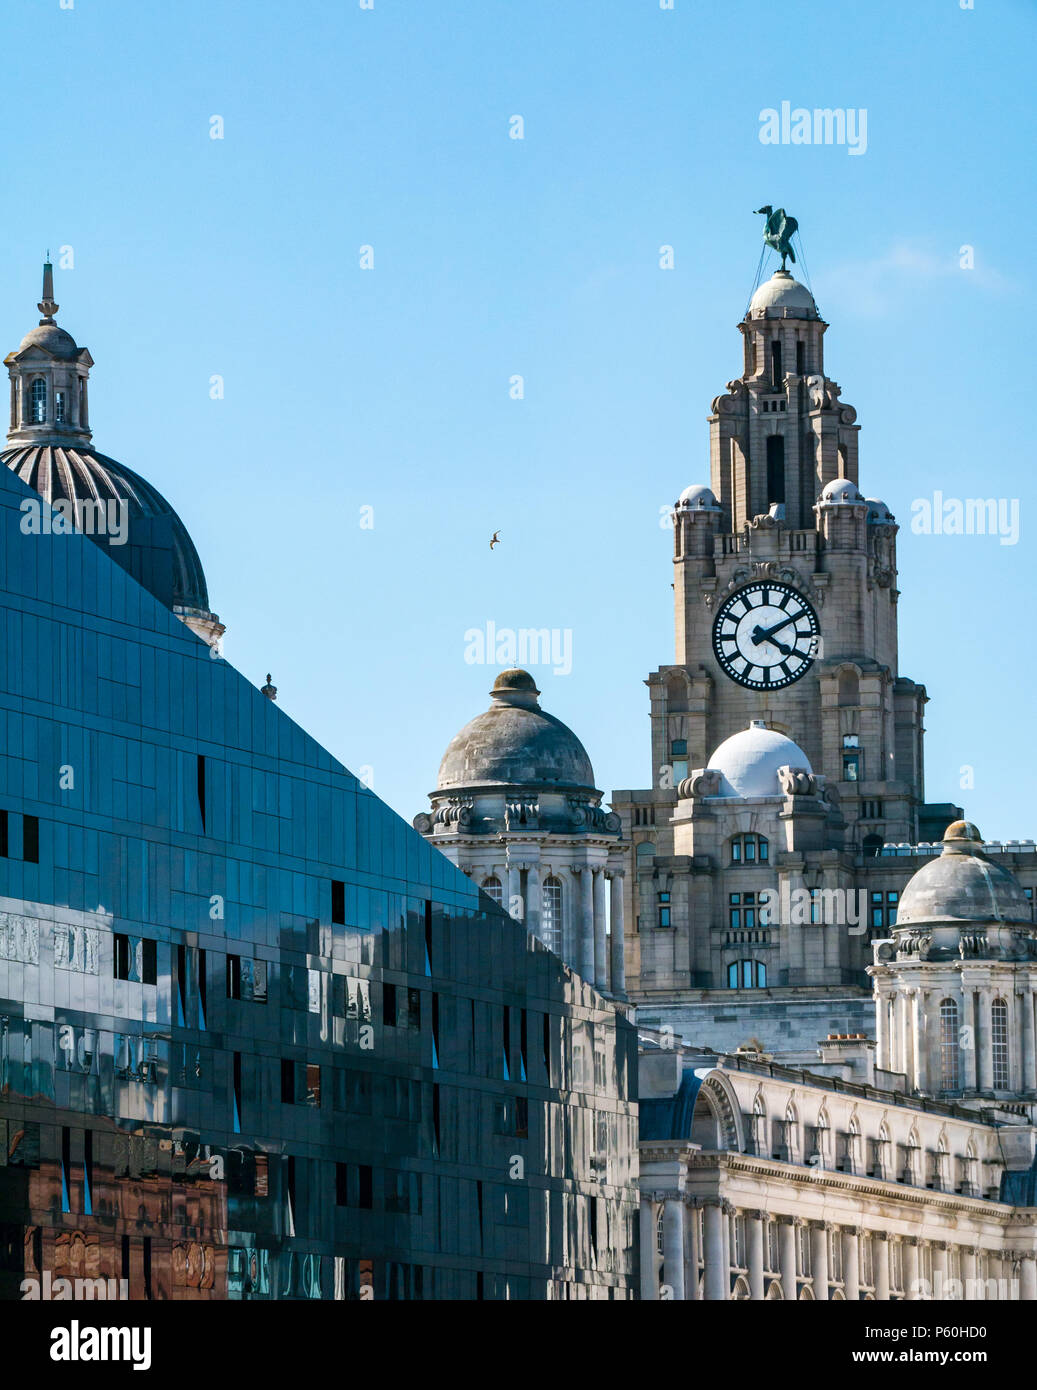 view-of-tower-of-royal-liver-building-wi